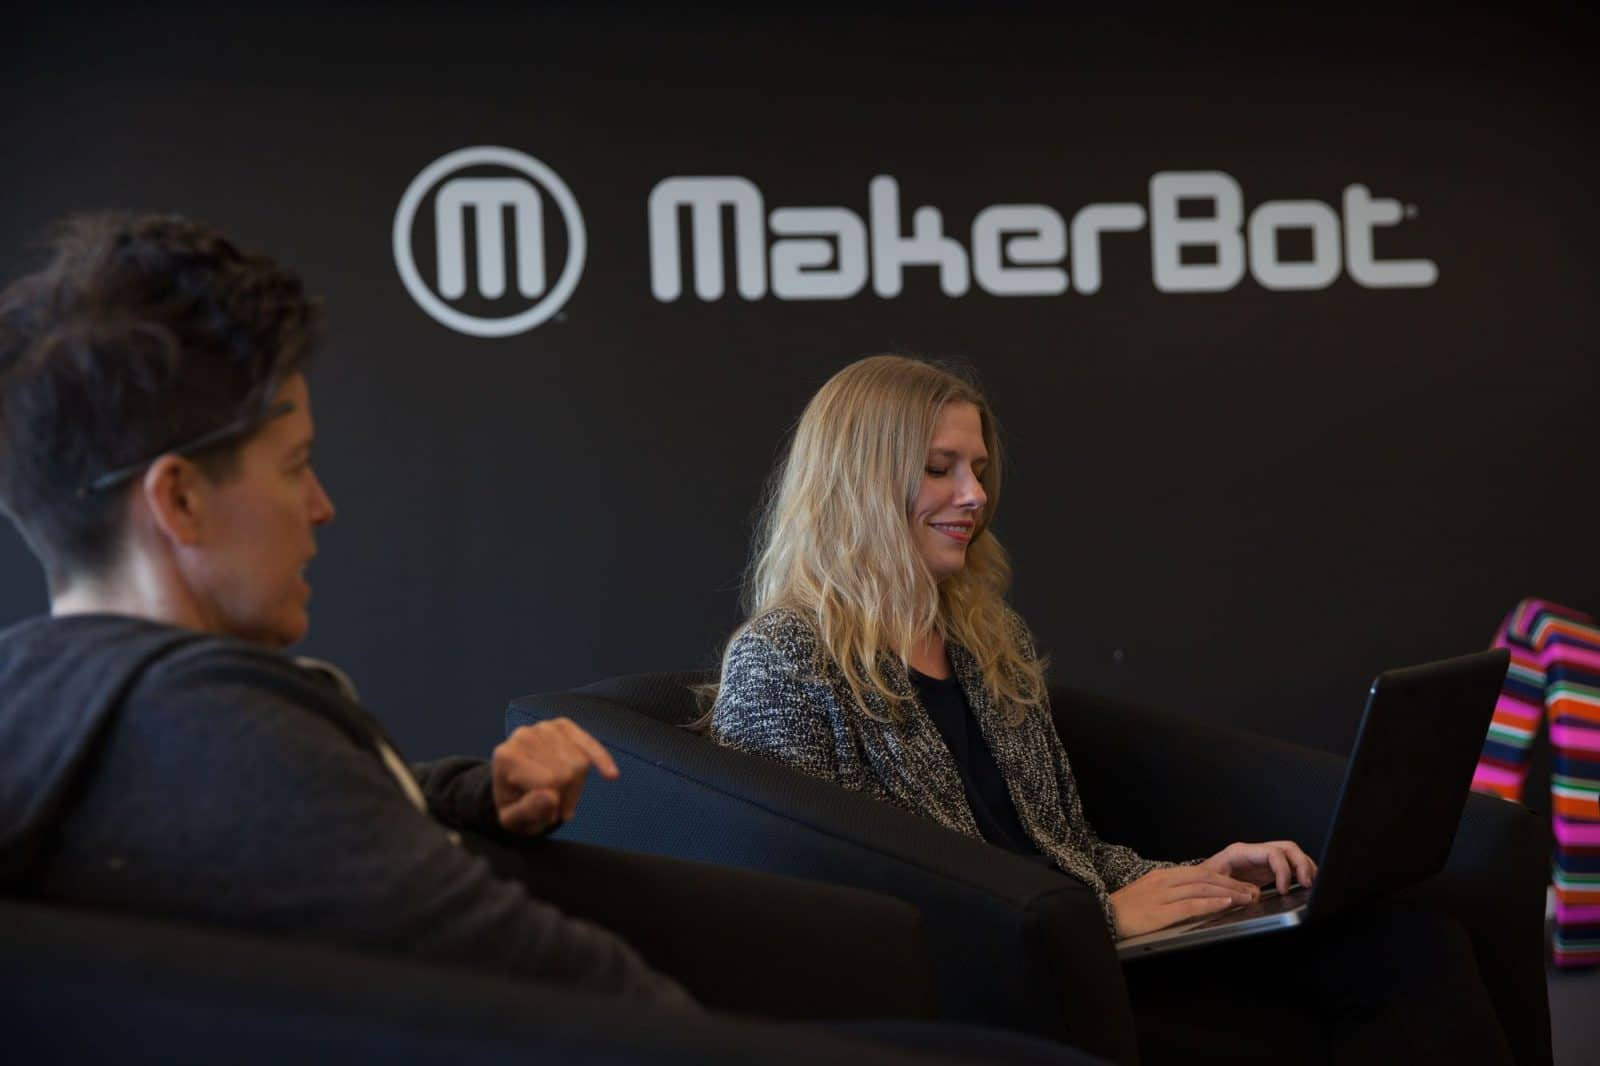 About MakerBot